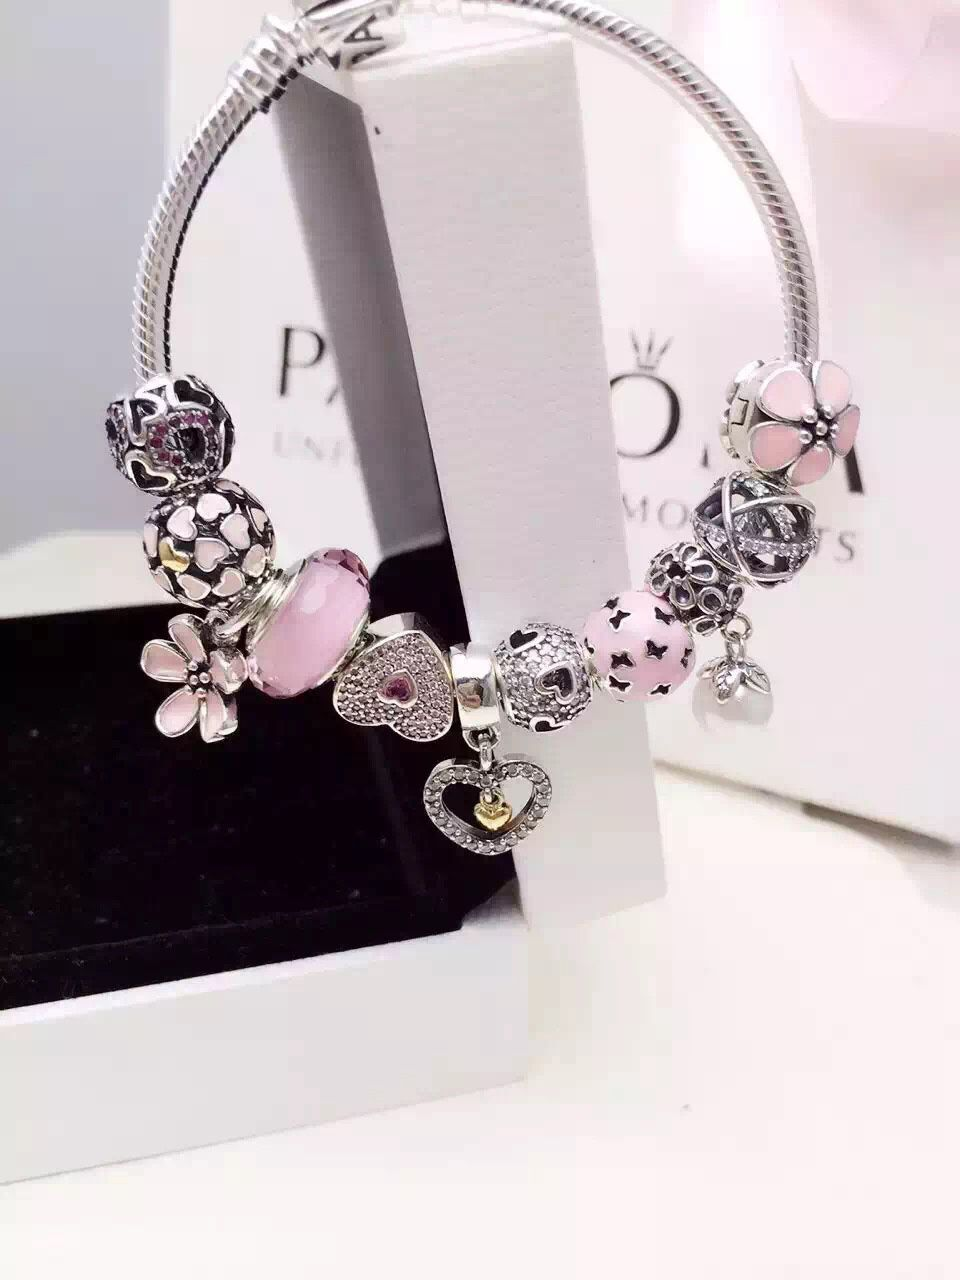 50 Off 279 Pandora Charm Bracelet Pink White Hot